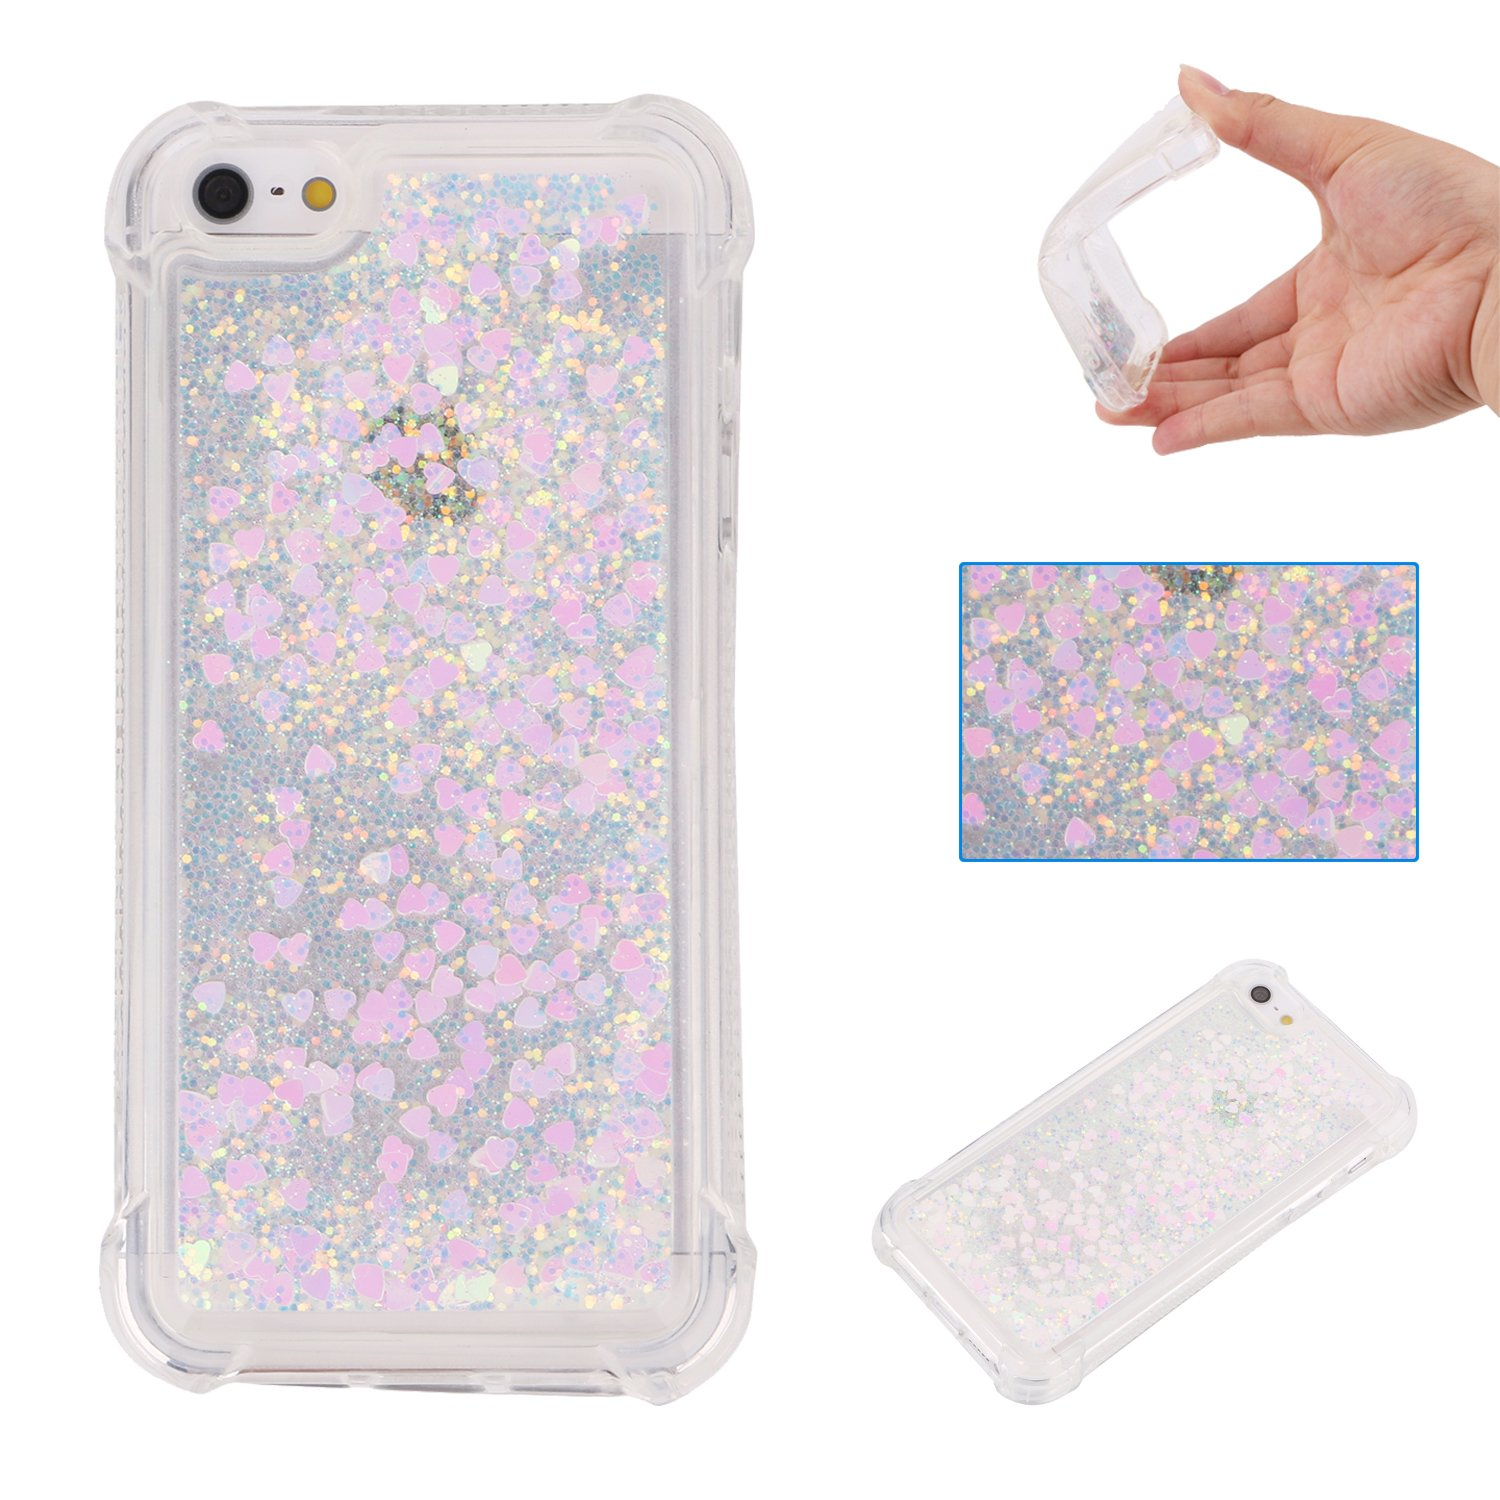 Liquid Case for iPhone 5C, Floating Case for iPhone 5C, Leeook Luxury Beauty Bling Shiny Sparkle Glitter Cover Rose Gold Love Heart Quicksand Flowing Creative Design Crystal Transparent Clear Plastic Soft TPU Protective Shock Proof Shell Case Cover Bumper